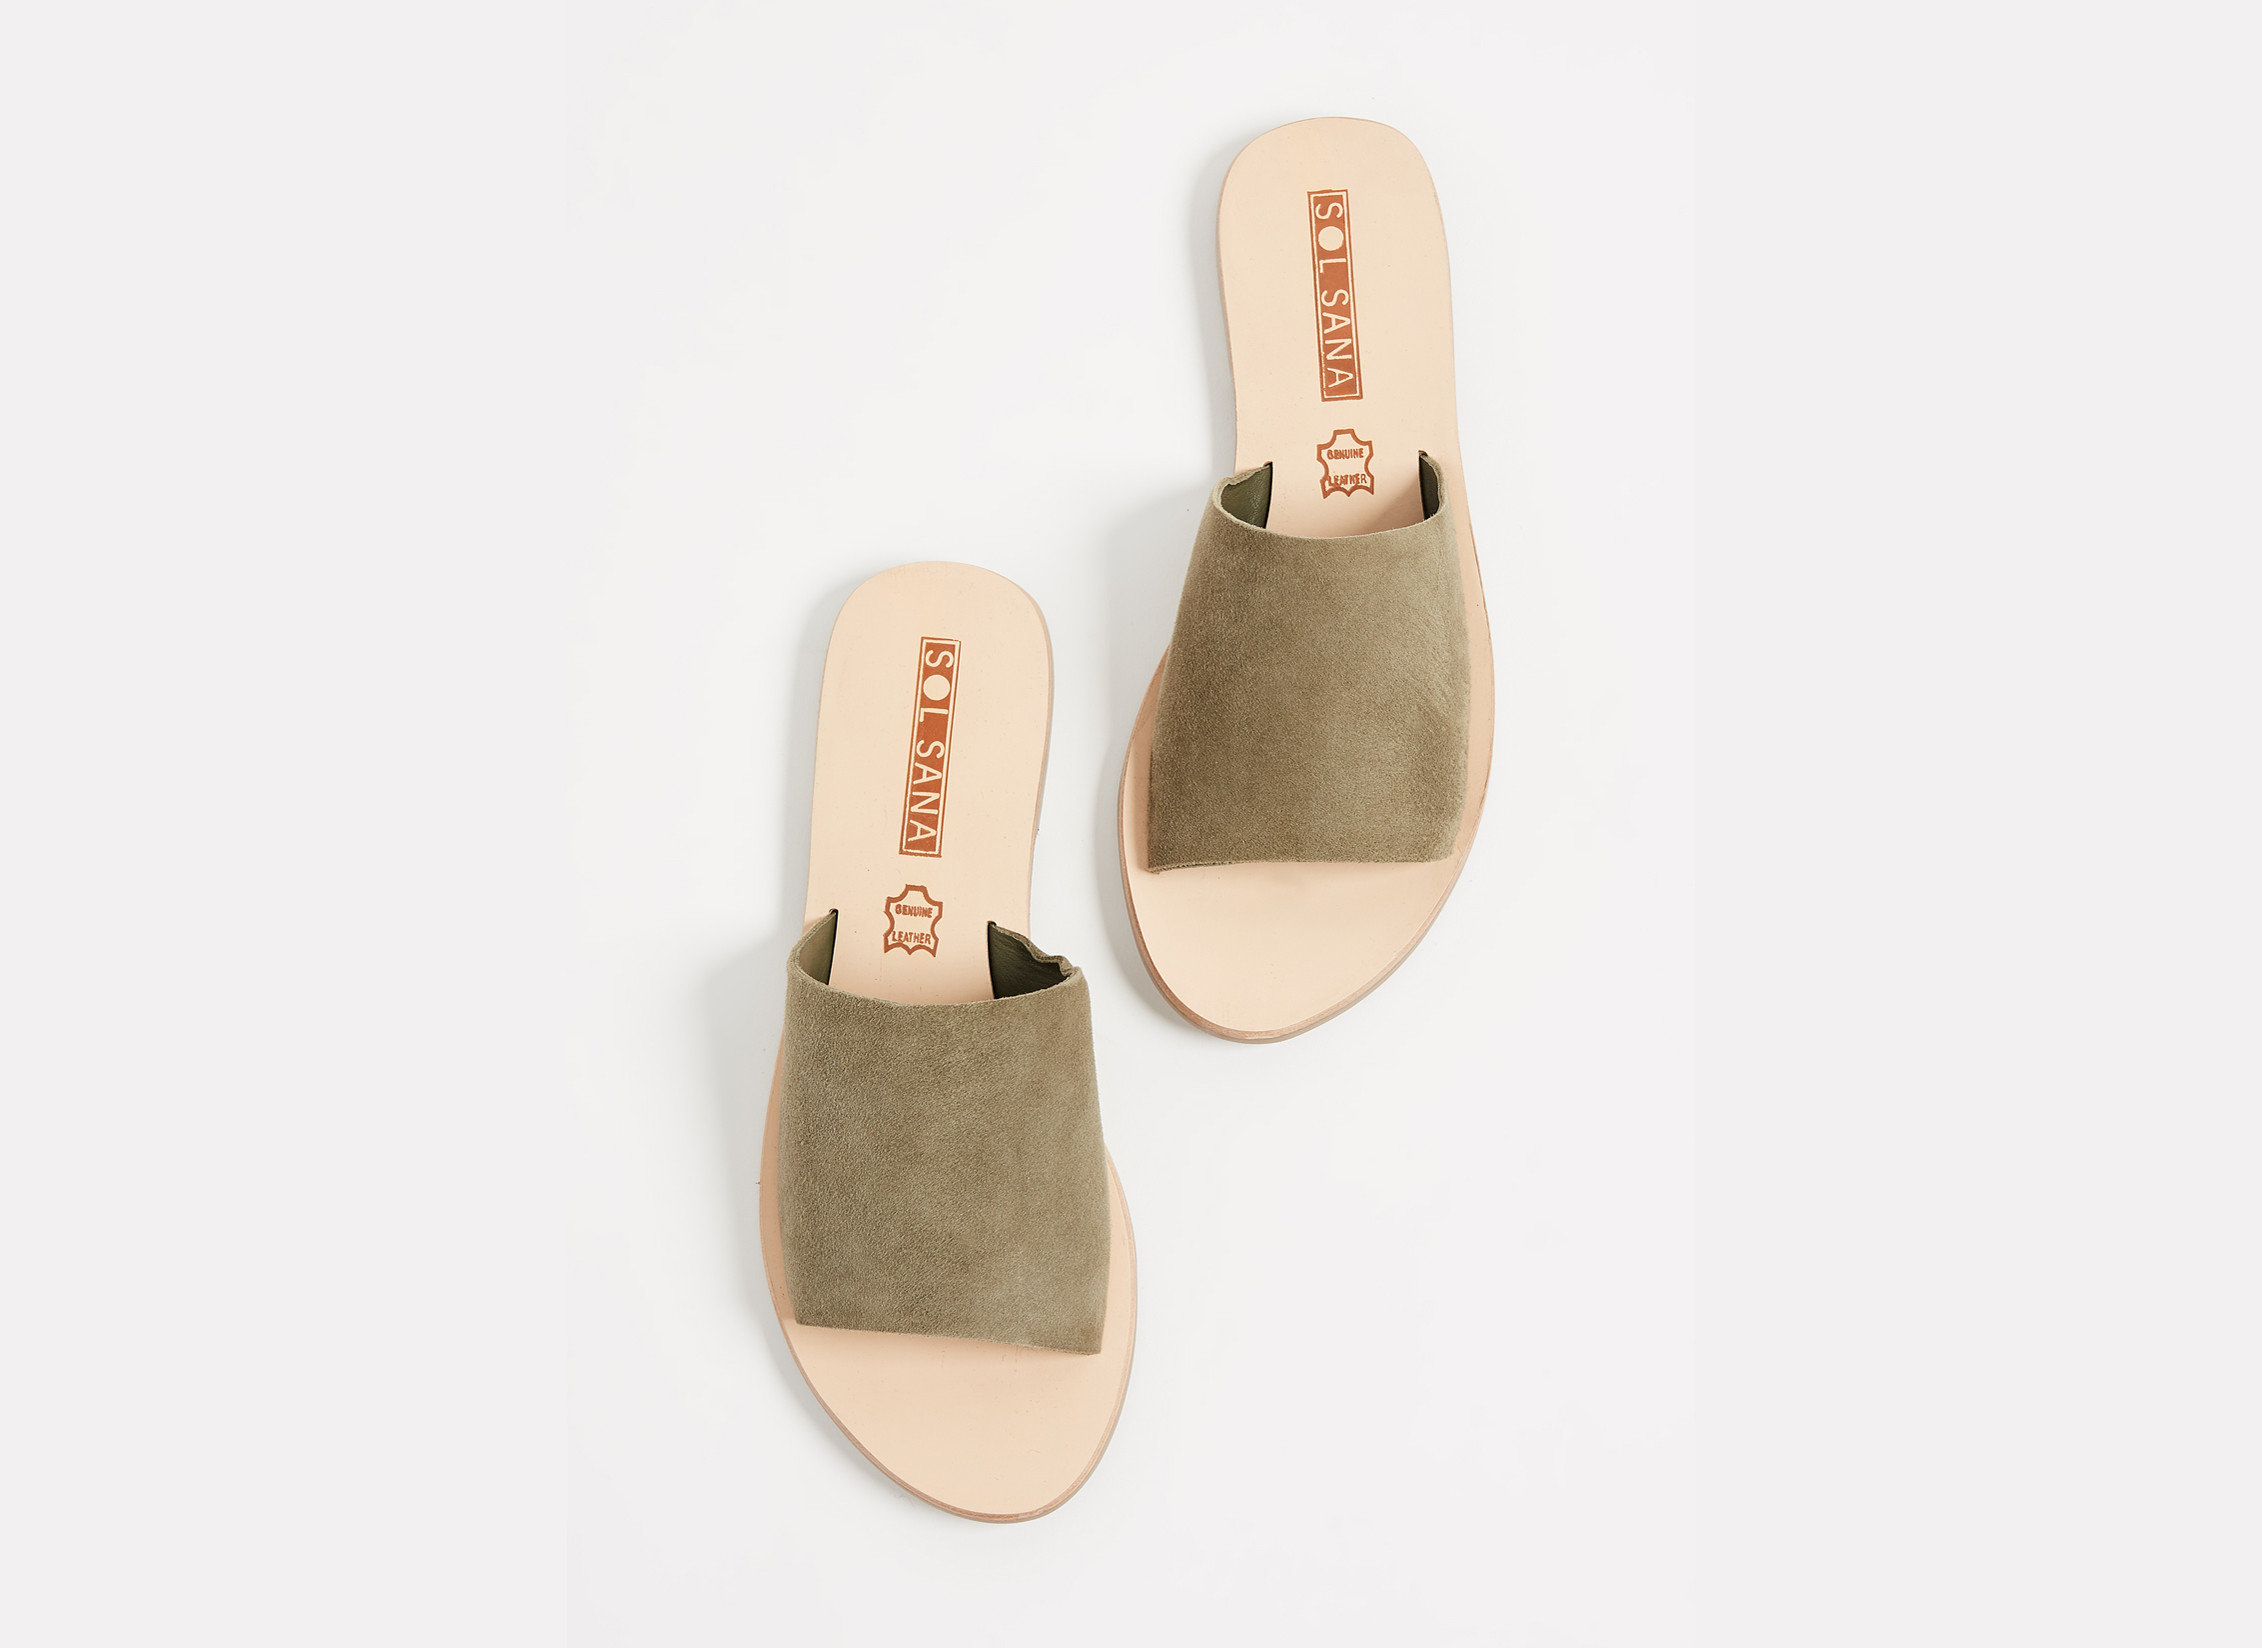 Spring Travel Style + Design Travel Shop footwear indoor shoe slipper beige outdoor shoe product design product sandal font accessory